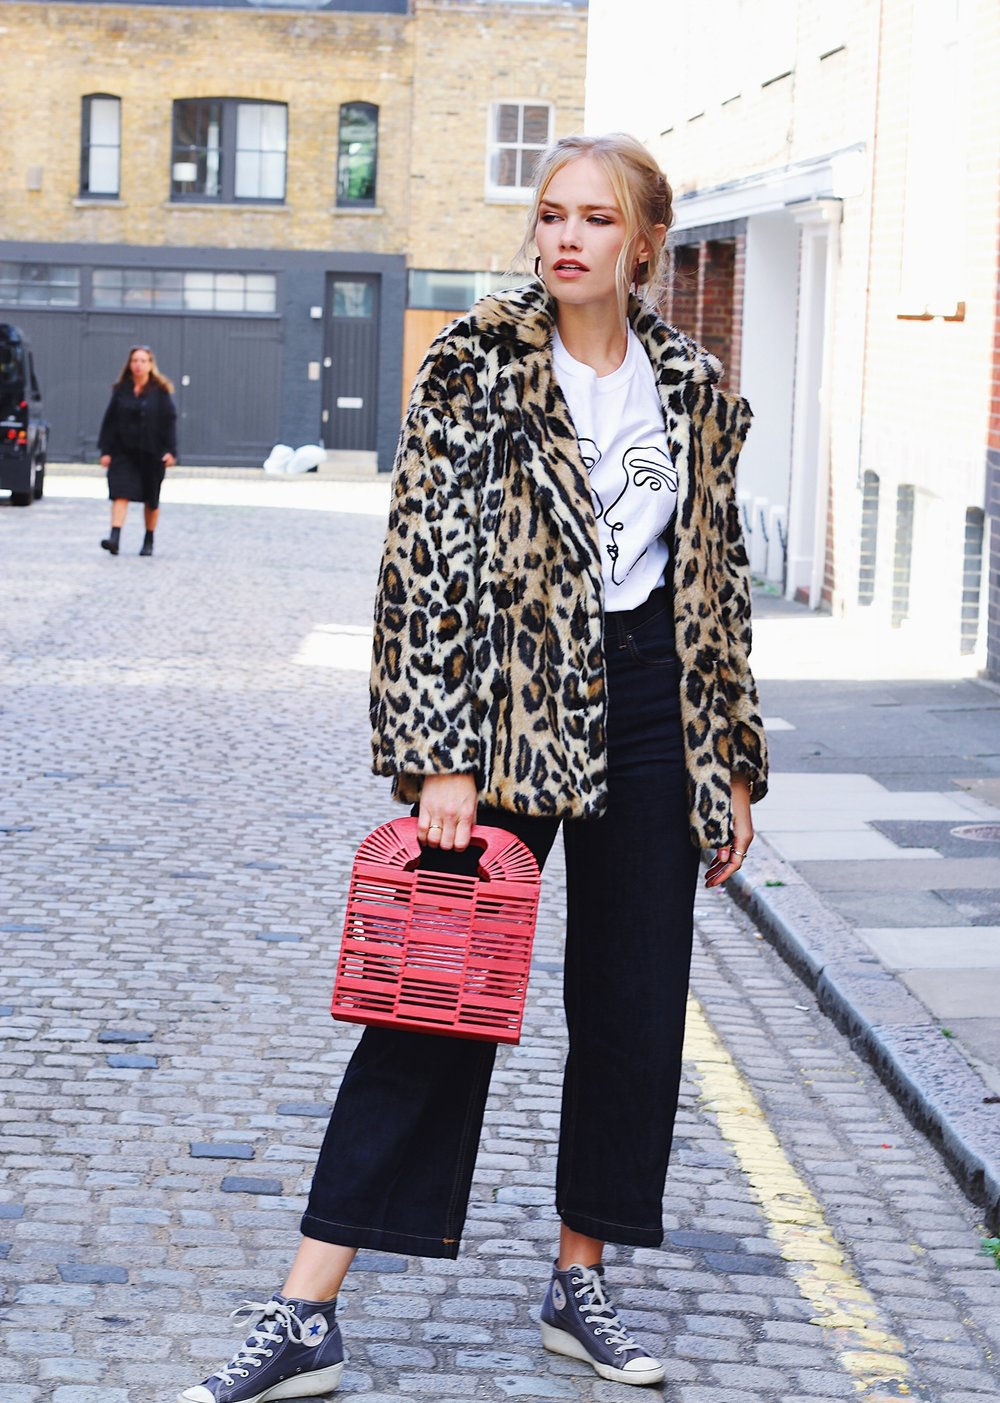 LEOPARD PRINT & RED! - Time for another street style post - and this one is all about Faux Fur coats and jackets. It is all about the animal prints this season, and I've joined the gang with a new leopard print coat from Free People (fake fur of course, obviously!! But can't point it out enough. All coats in this post are, hence the 'Faux Fur' headline :p).Anyway, I got my new super warm and stylish coat which I know will be an all time favourite this season. I'm a big fan of the leopard print and red combo - so for this particular outfit I styled the coat with a bright red bamboo bag and some maroon hexagon hoop earrings. As the jacket and hand bag is quite a lot already, I kept the rest of the outfit fairly simple, with a white printed T-Shirt from Reclaimed Vintage and some wide legged dark blue jeans from Mango. My converse is an old model that I have had for years now, and I think they are not for sale anymore. I love the little wedges on them and wish I could get them in more colours. Oh well, I'll survive.. ha!